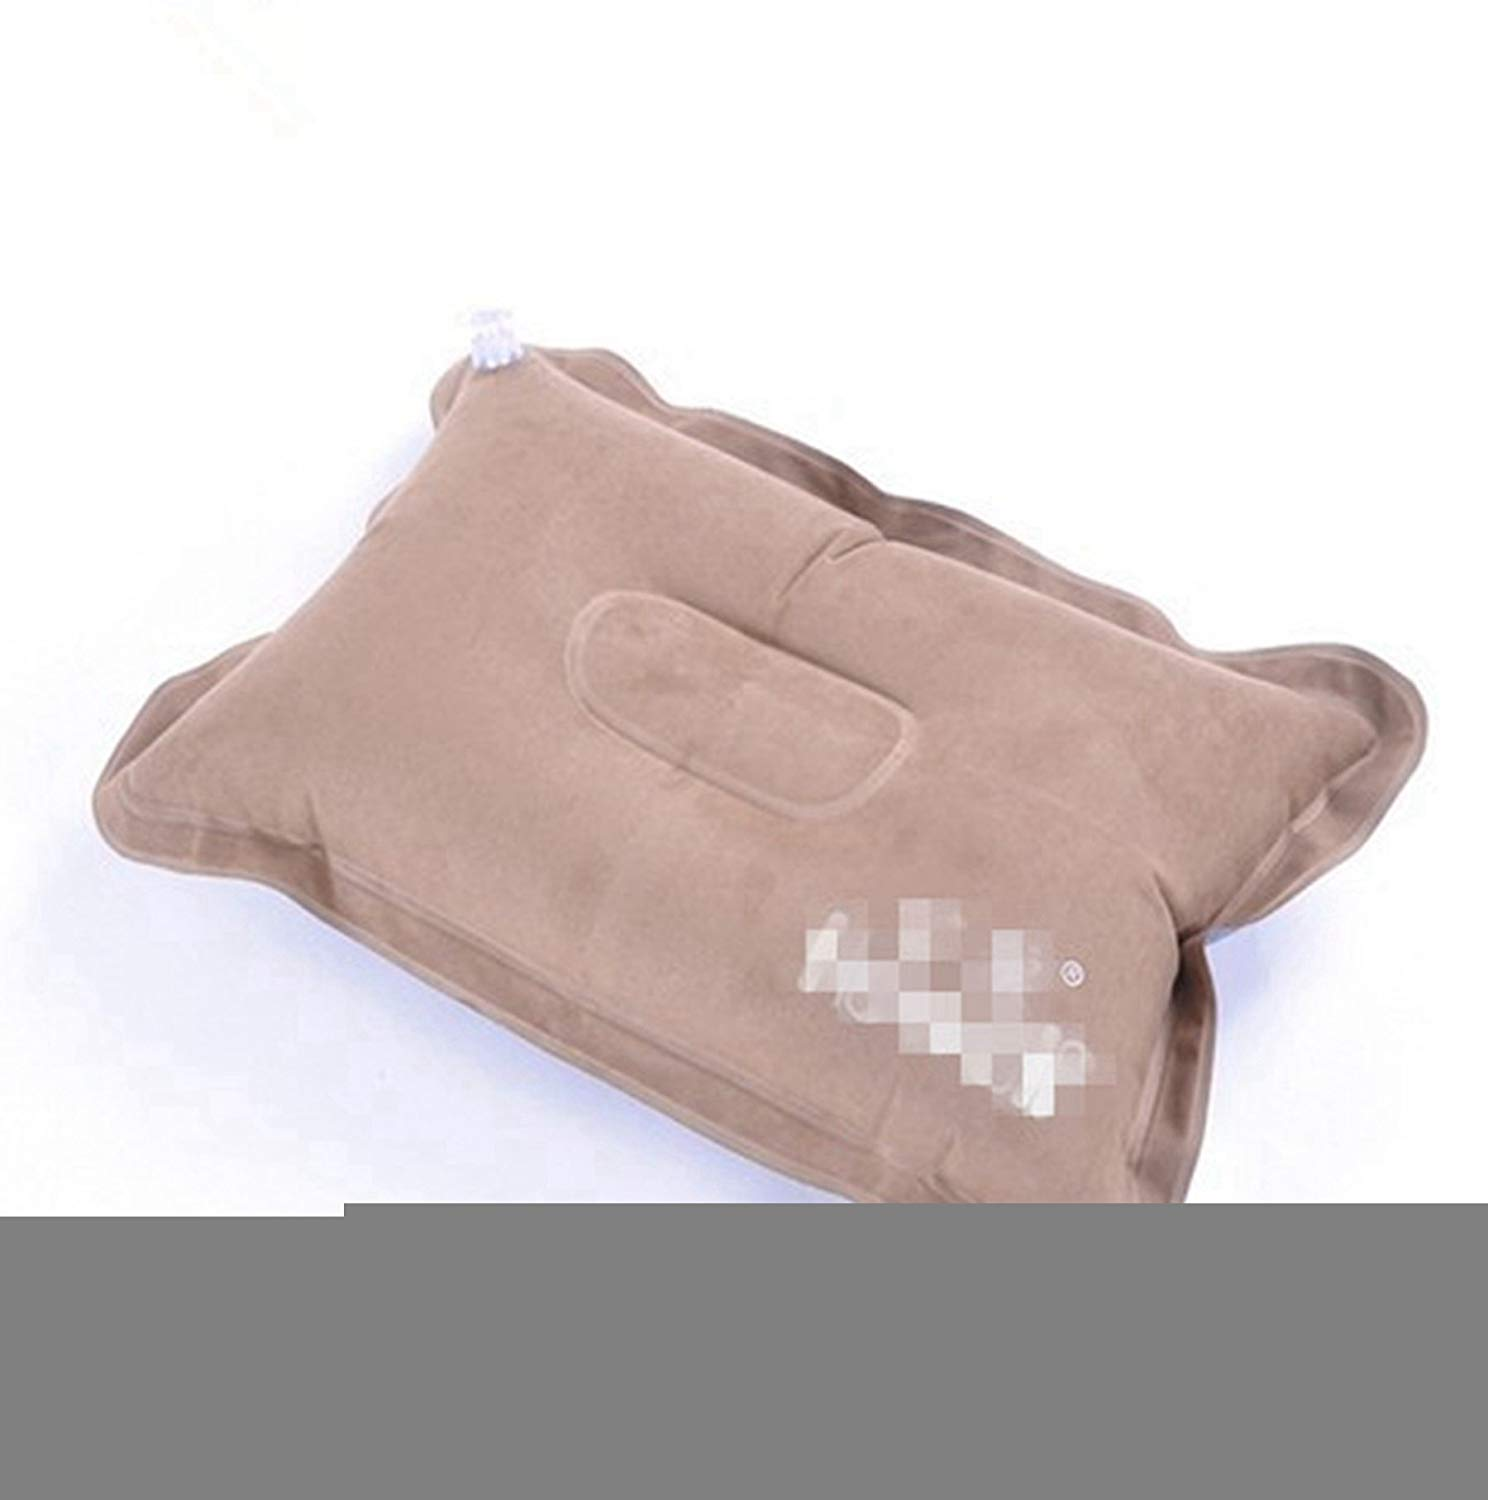 KINGDE outdoor camping back cushion faux suede air pillow#KZ90